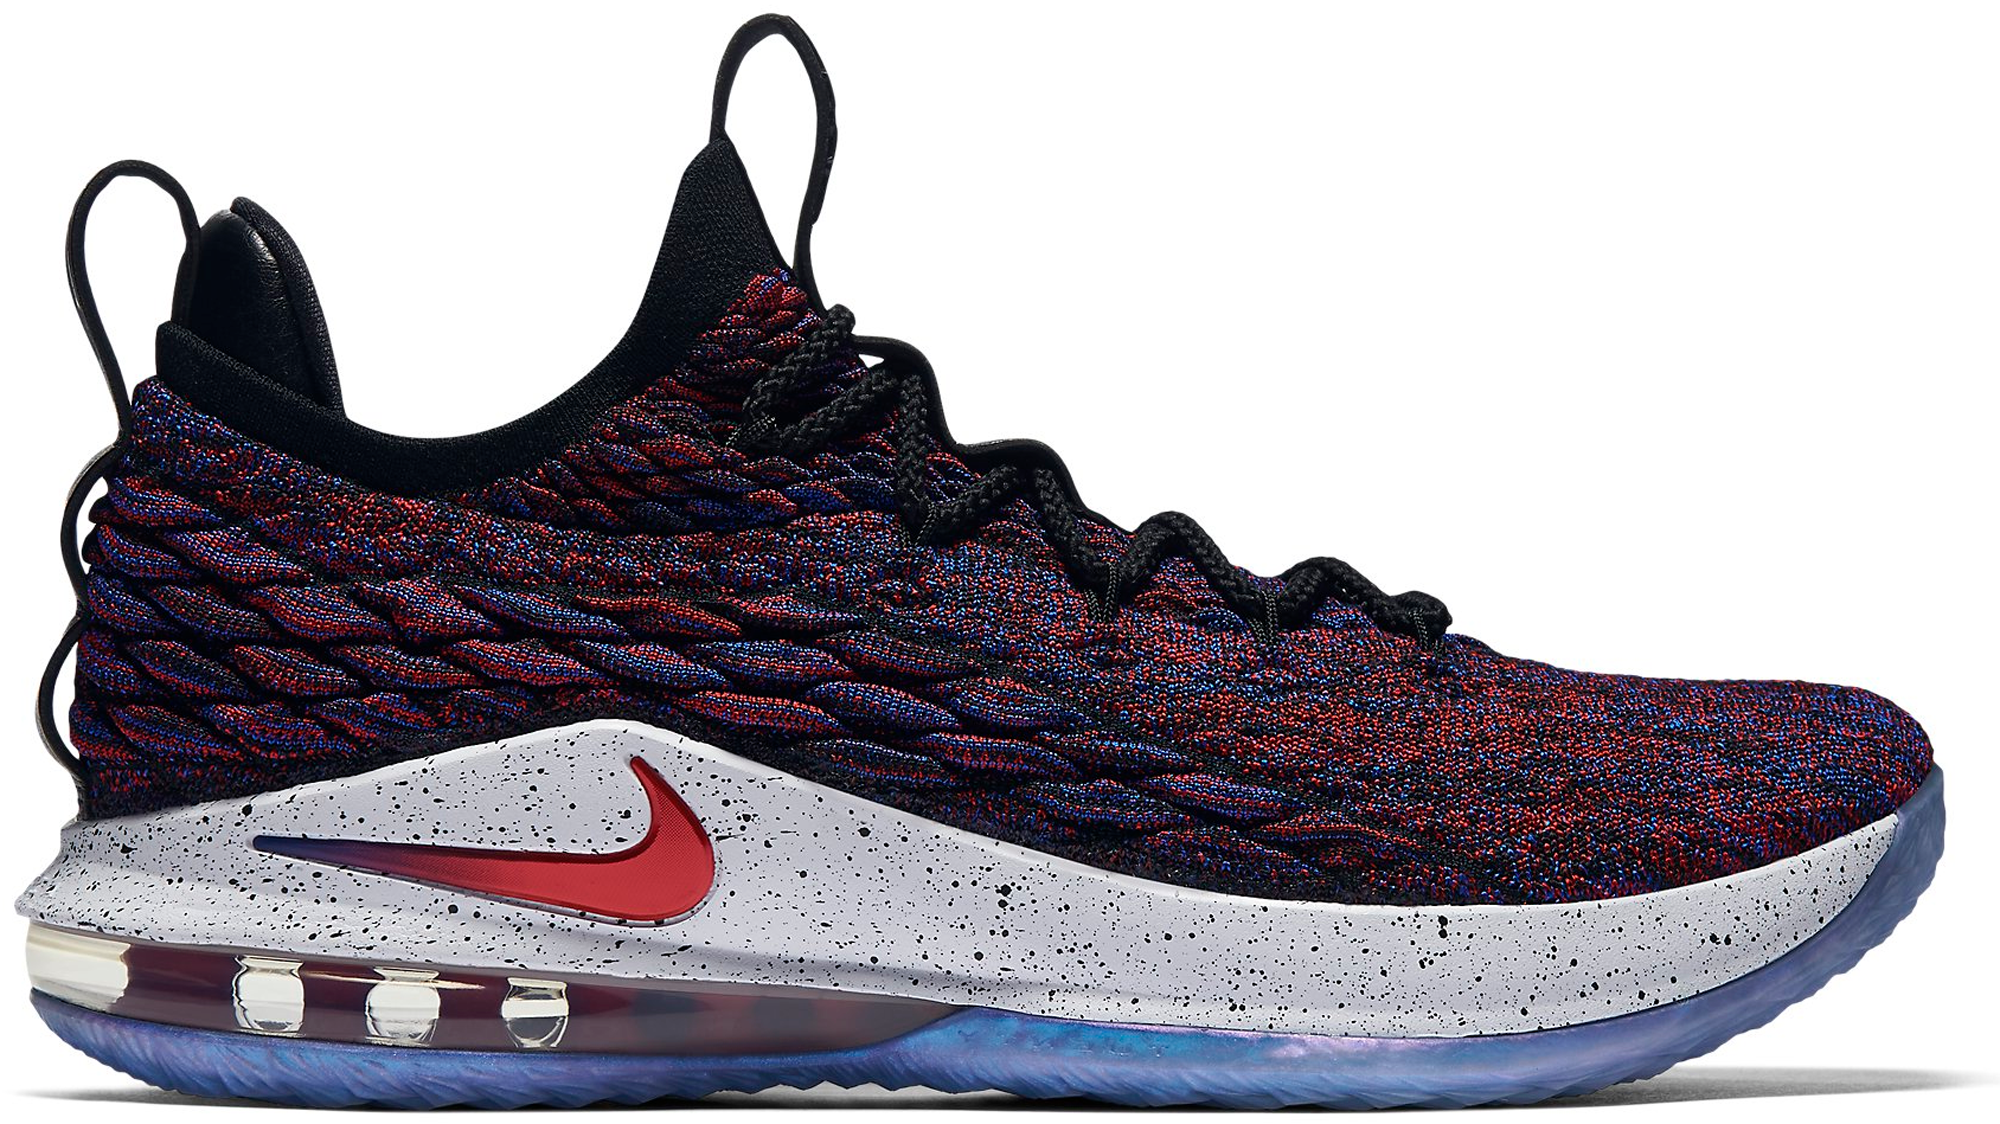 huge selection of 1ec4c 12a95 Nike LeBron 15 Low Supernova